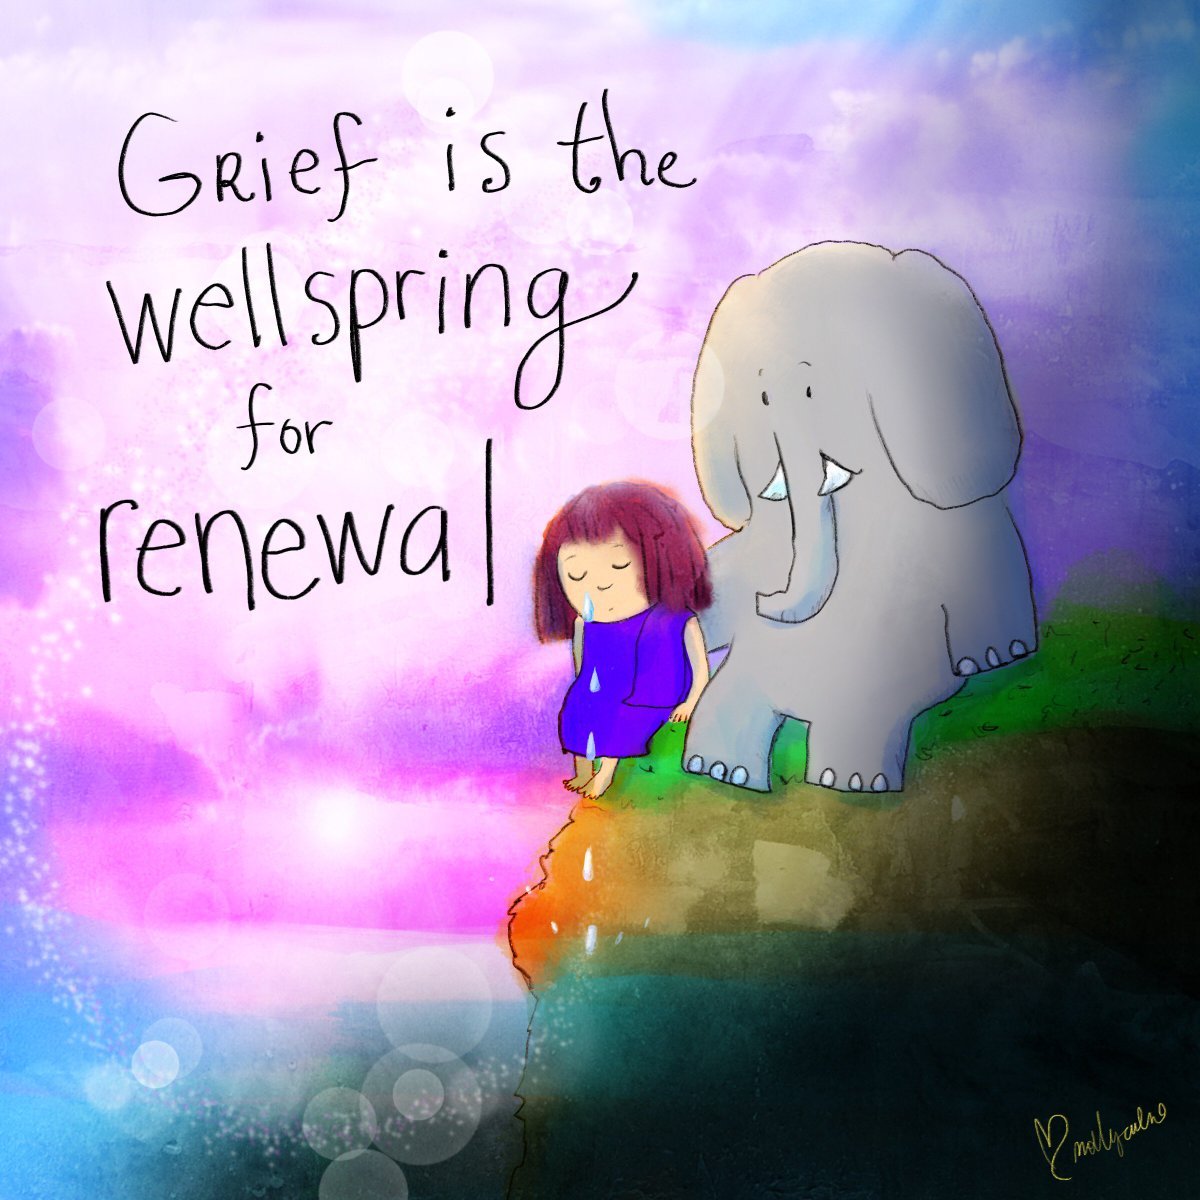 #Tears & #Grief are a wellspring for #Renewal!  #JoyTrain #NeverGIveUp #Joy #Love #Kindness #MentalHealth #Mindfulness #GoldenHearts #IAM #Quote #ChooseLove #SaturdayMorning  #SaturdayMotivation #SaturdayThoughts  #ThinkBIGSundayWithMarsha  RT@BuddhaDoodles